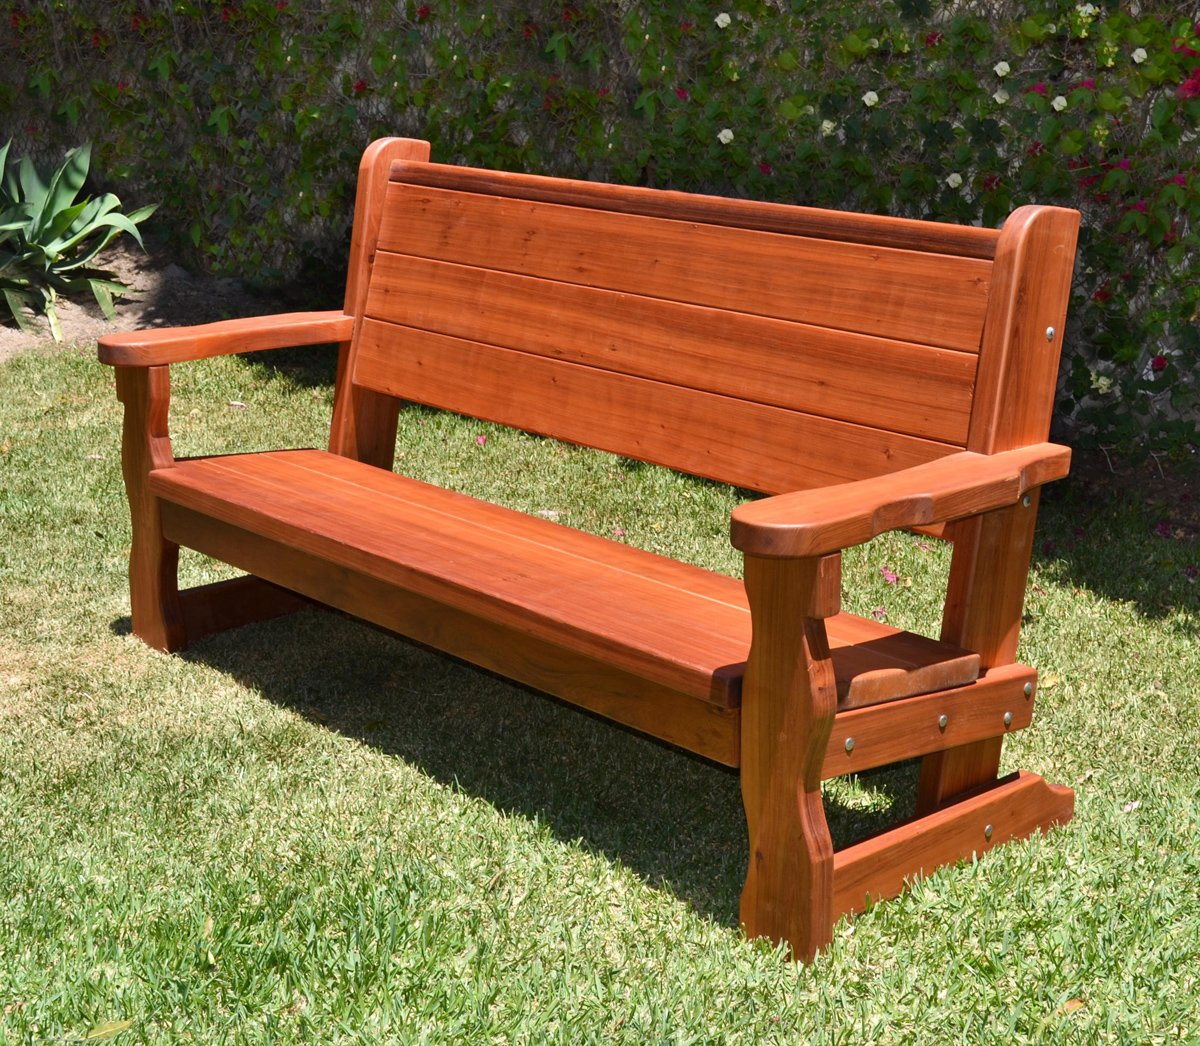 Rustic Wood Bench With Back For Garden Seating Forever